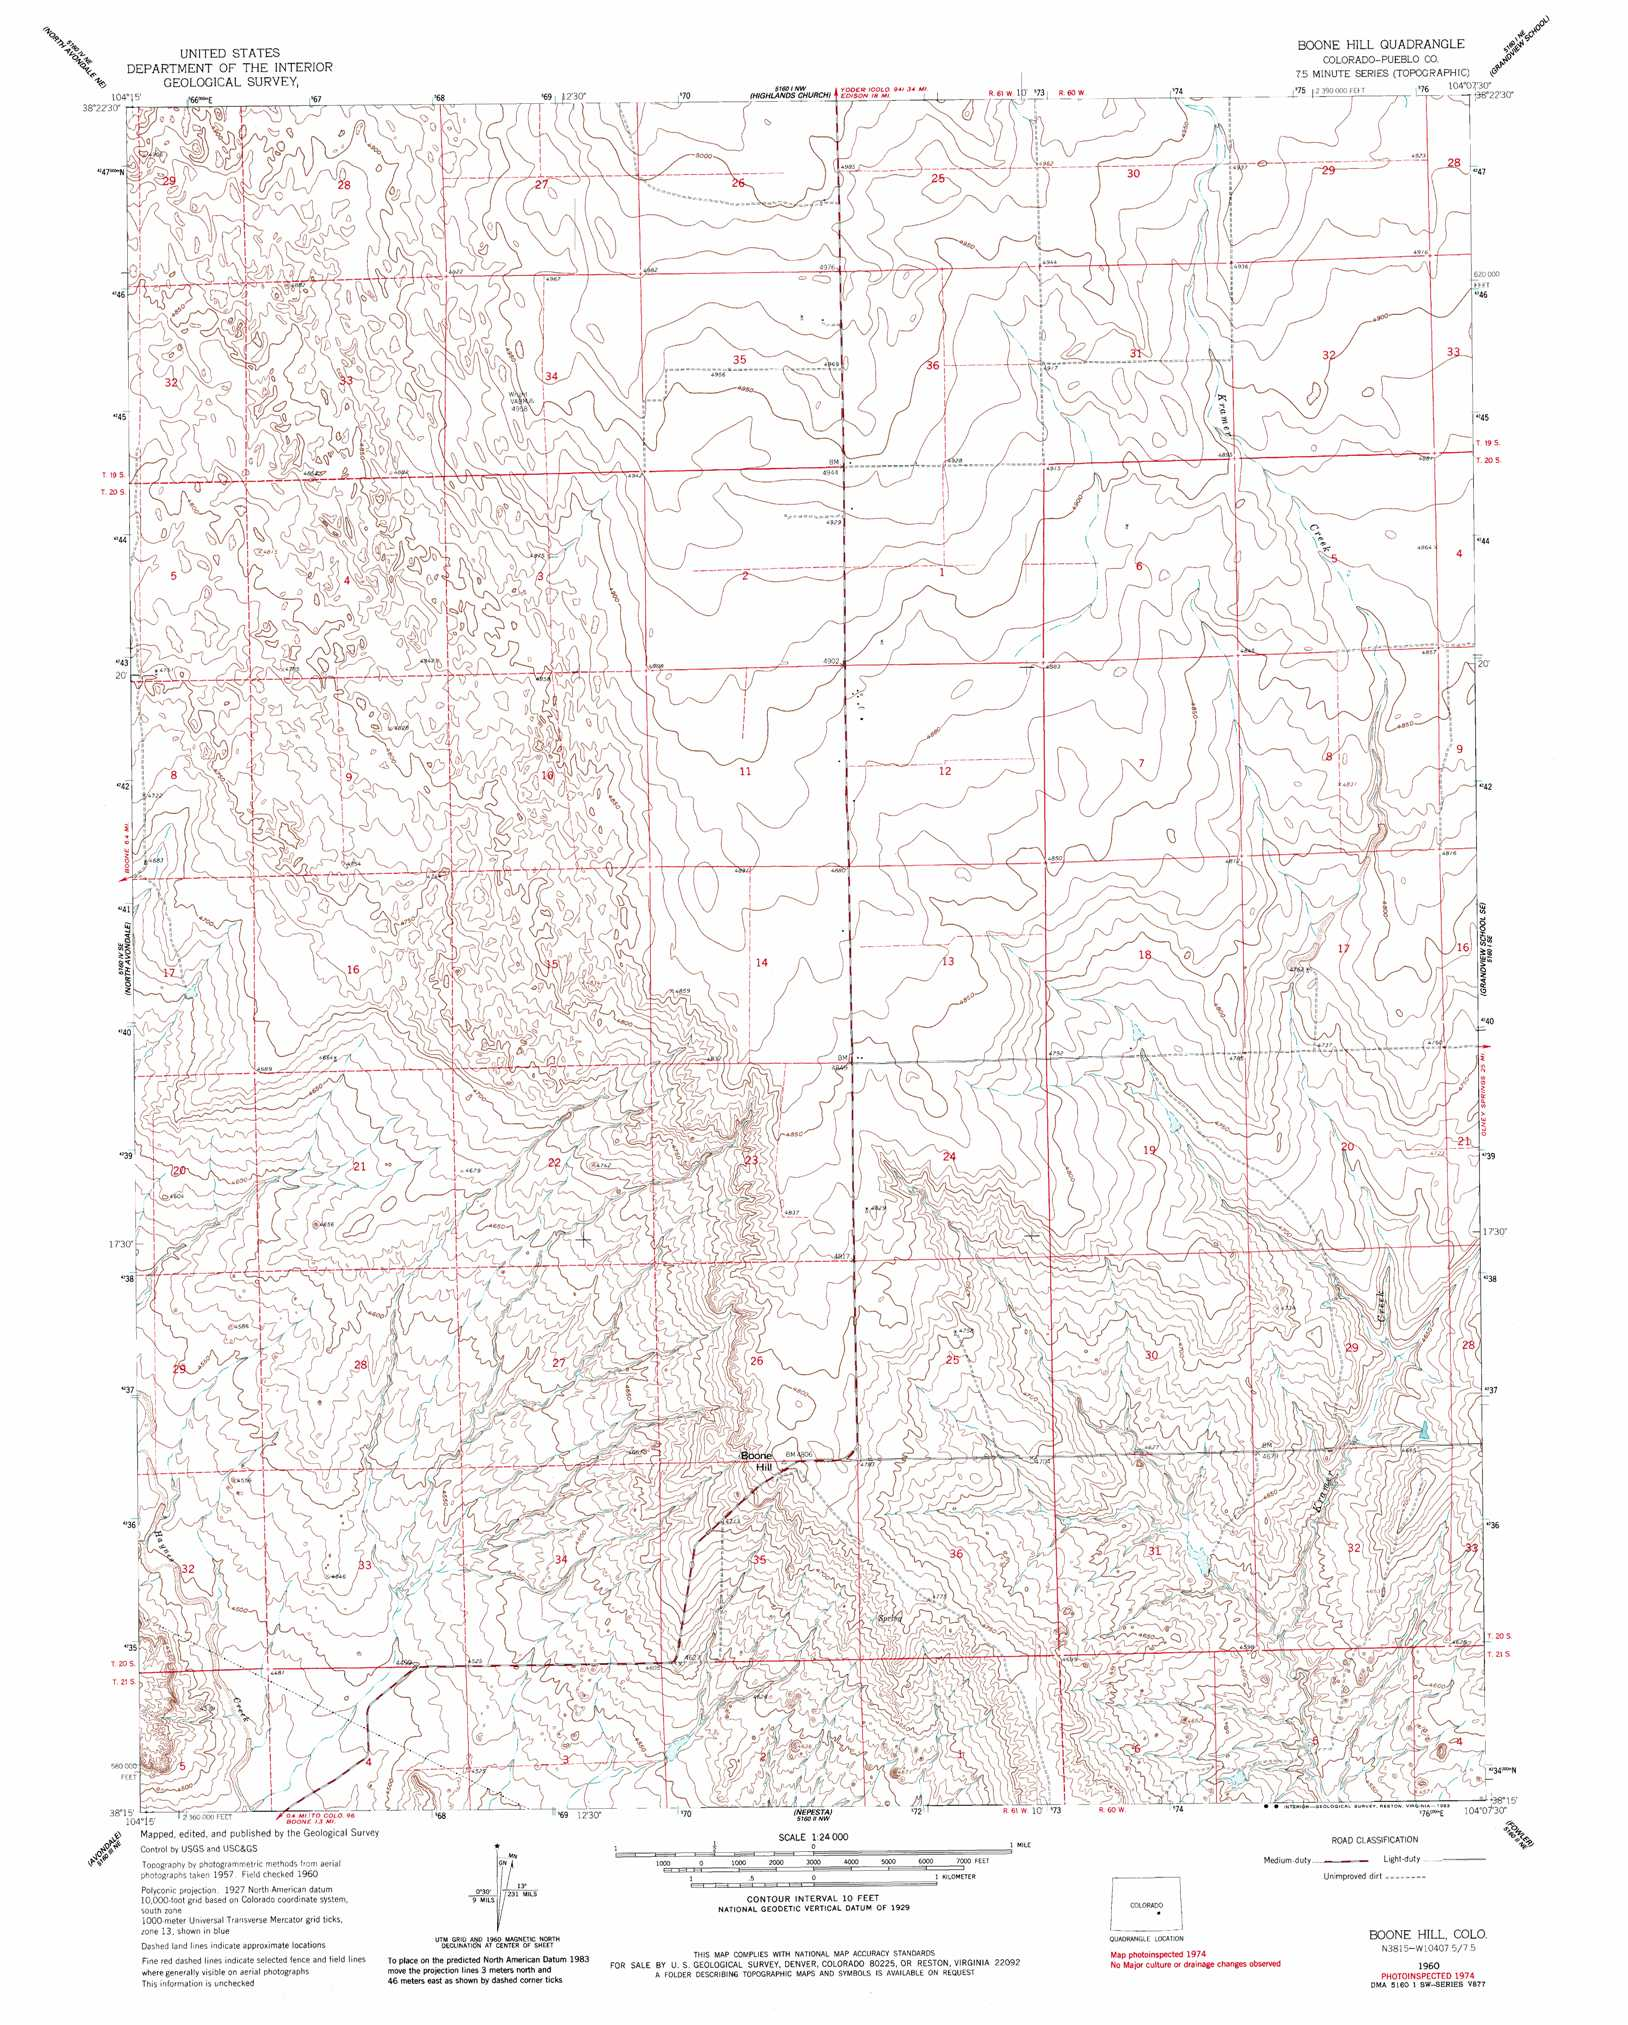 Boone Hill Topographic Map Co